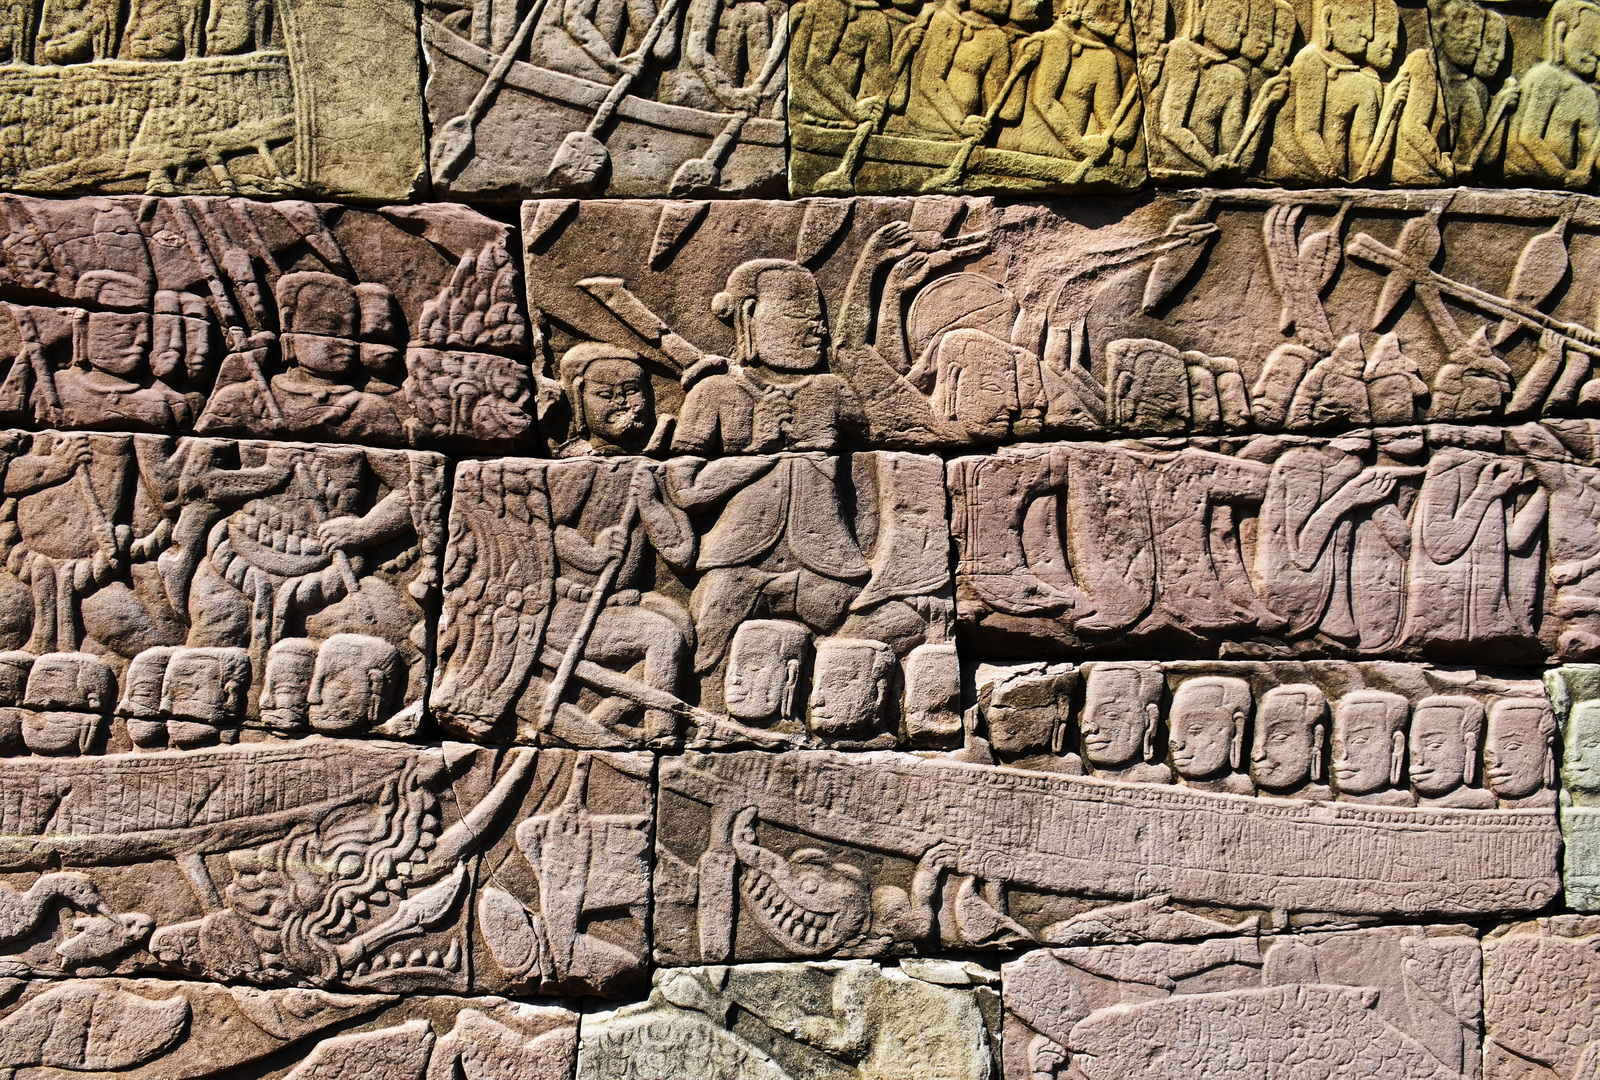 Bas reliefs at Banteay Chhmar depicting a naval battle on the Tonle Sap against the Chams